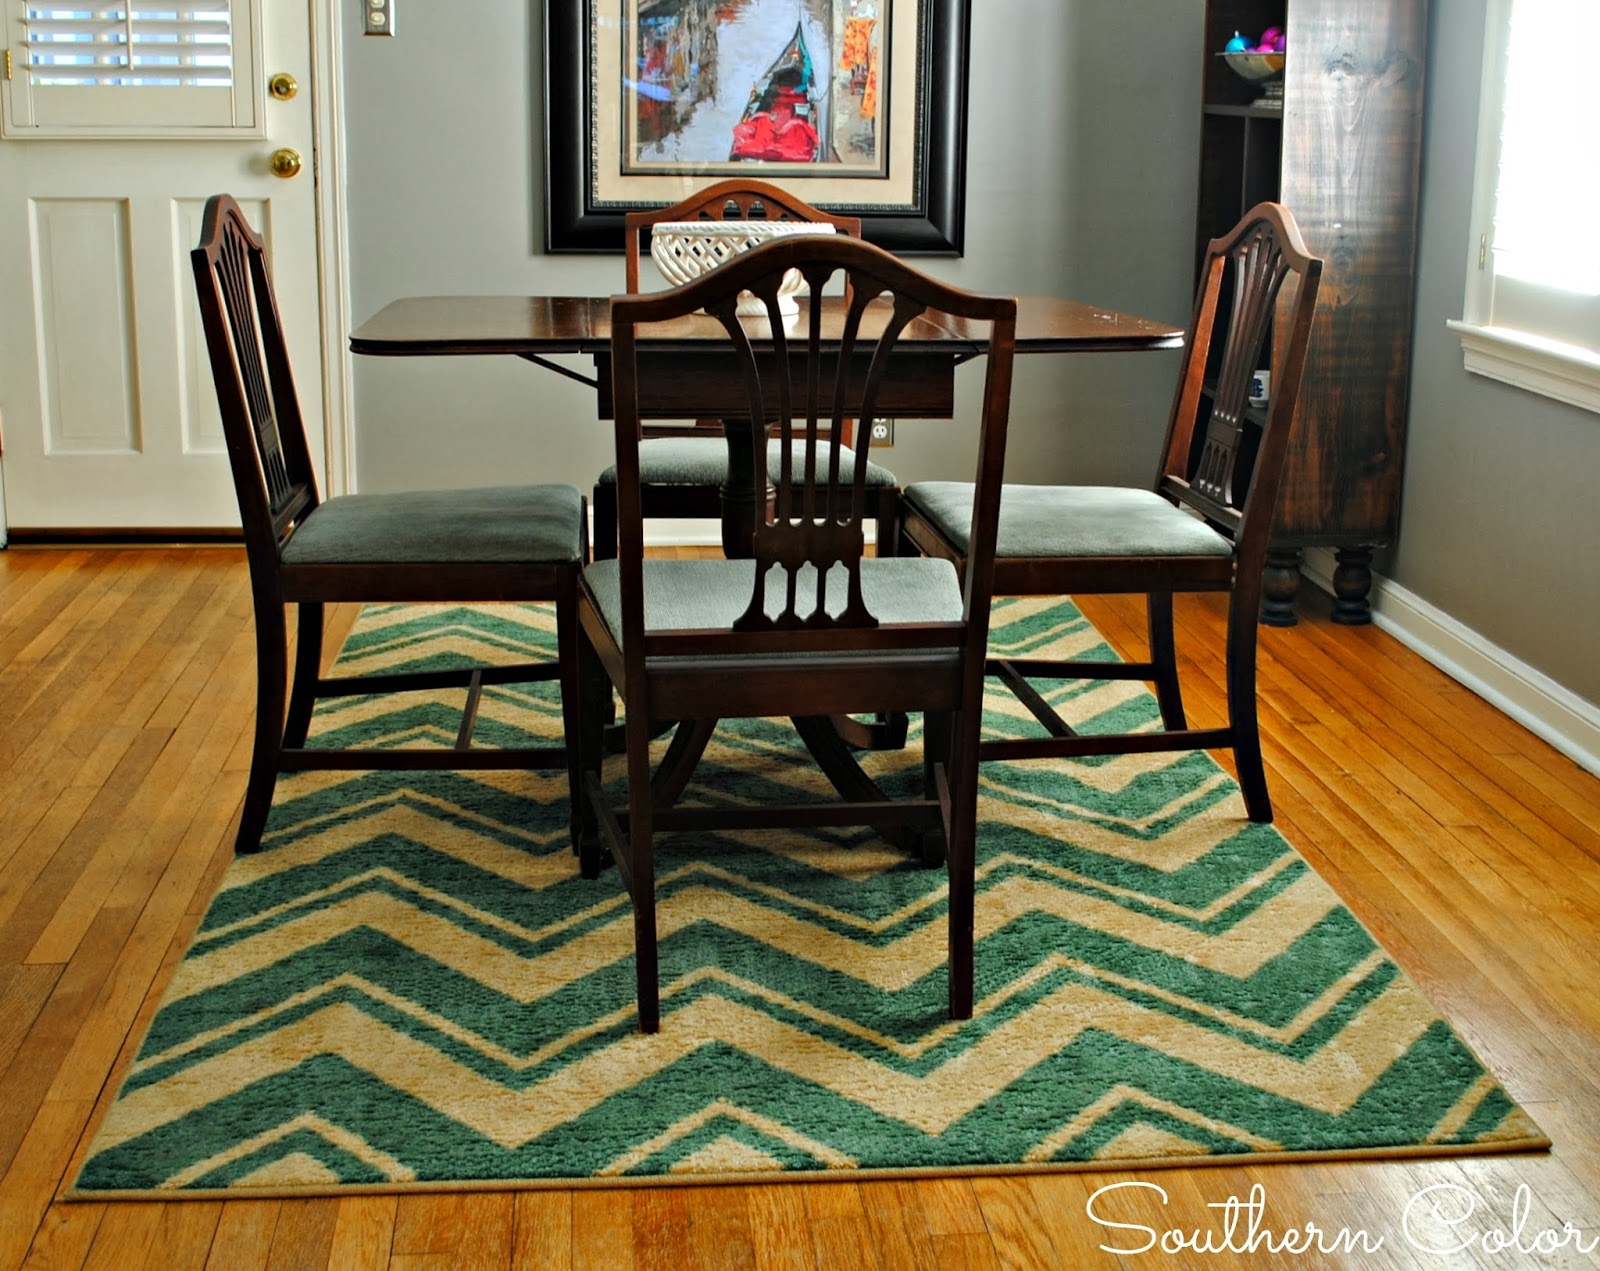 southern color mohawk rug review and giveaway. Black Bedroom Furniture Sets. Home Design Ideas